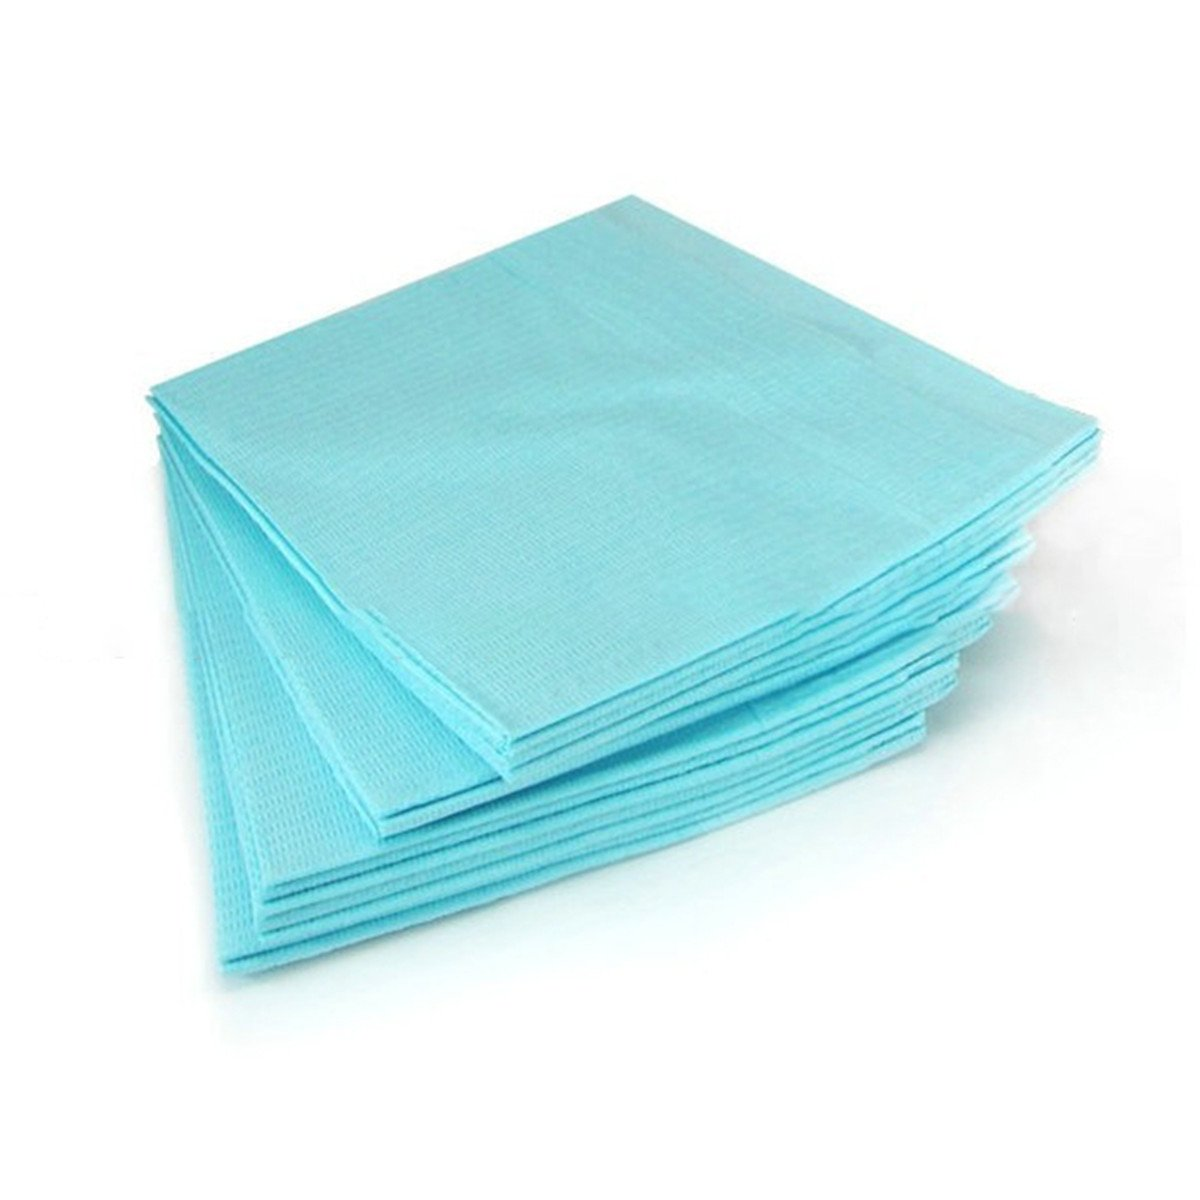 Angelwill Disposable Dental Patient Bib Sheet Medical Clinical Waterproof 3-Ply Sheets Tattoo Cloth Protector 125Pcs